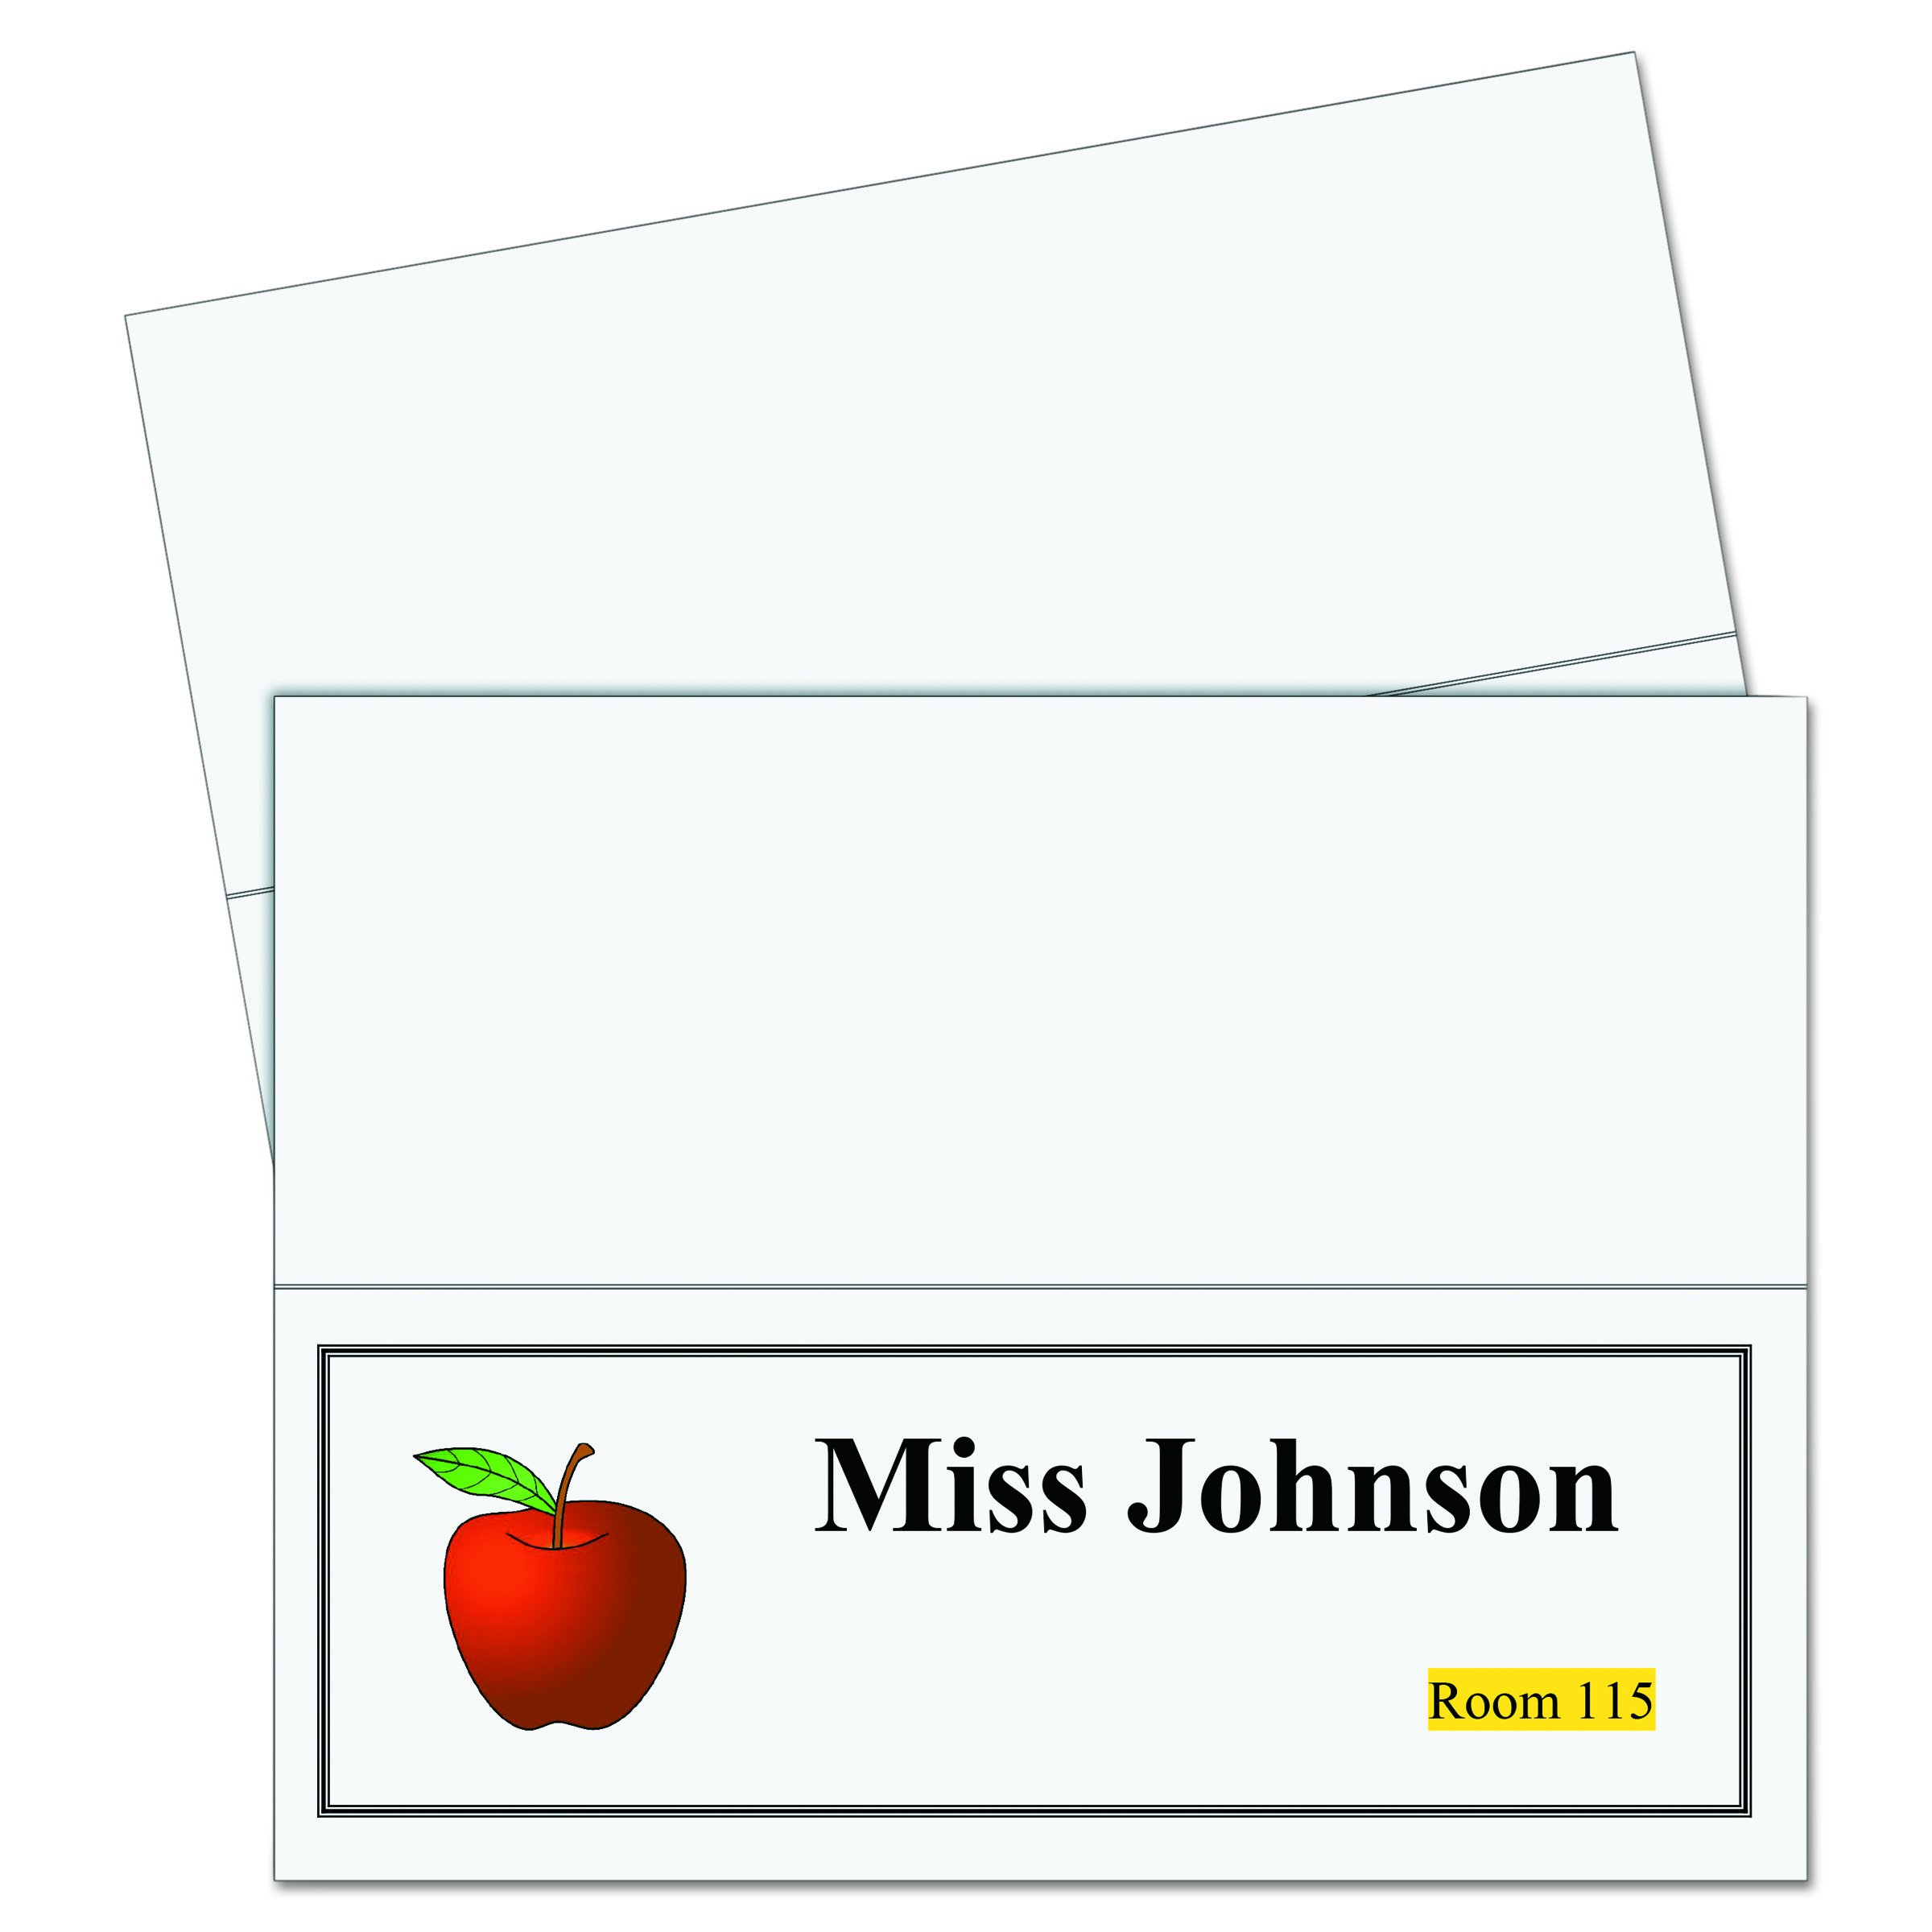 C-Line 87517 Printer-Ready Name Tent Cards, 11 x 4 1/4, White Cardstock (Box of 50 Letter Sheets)